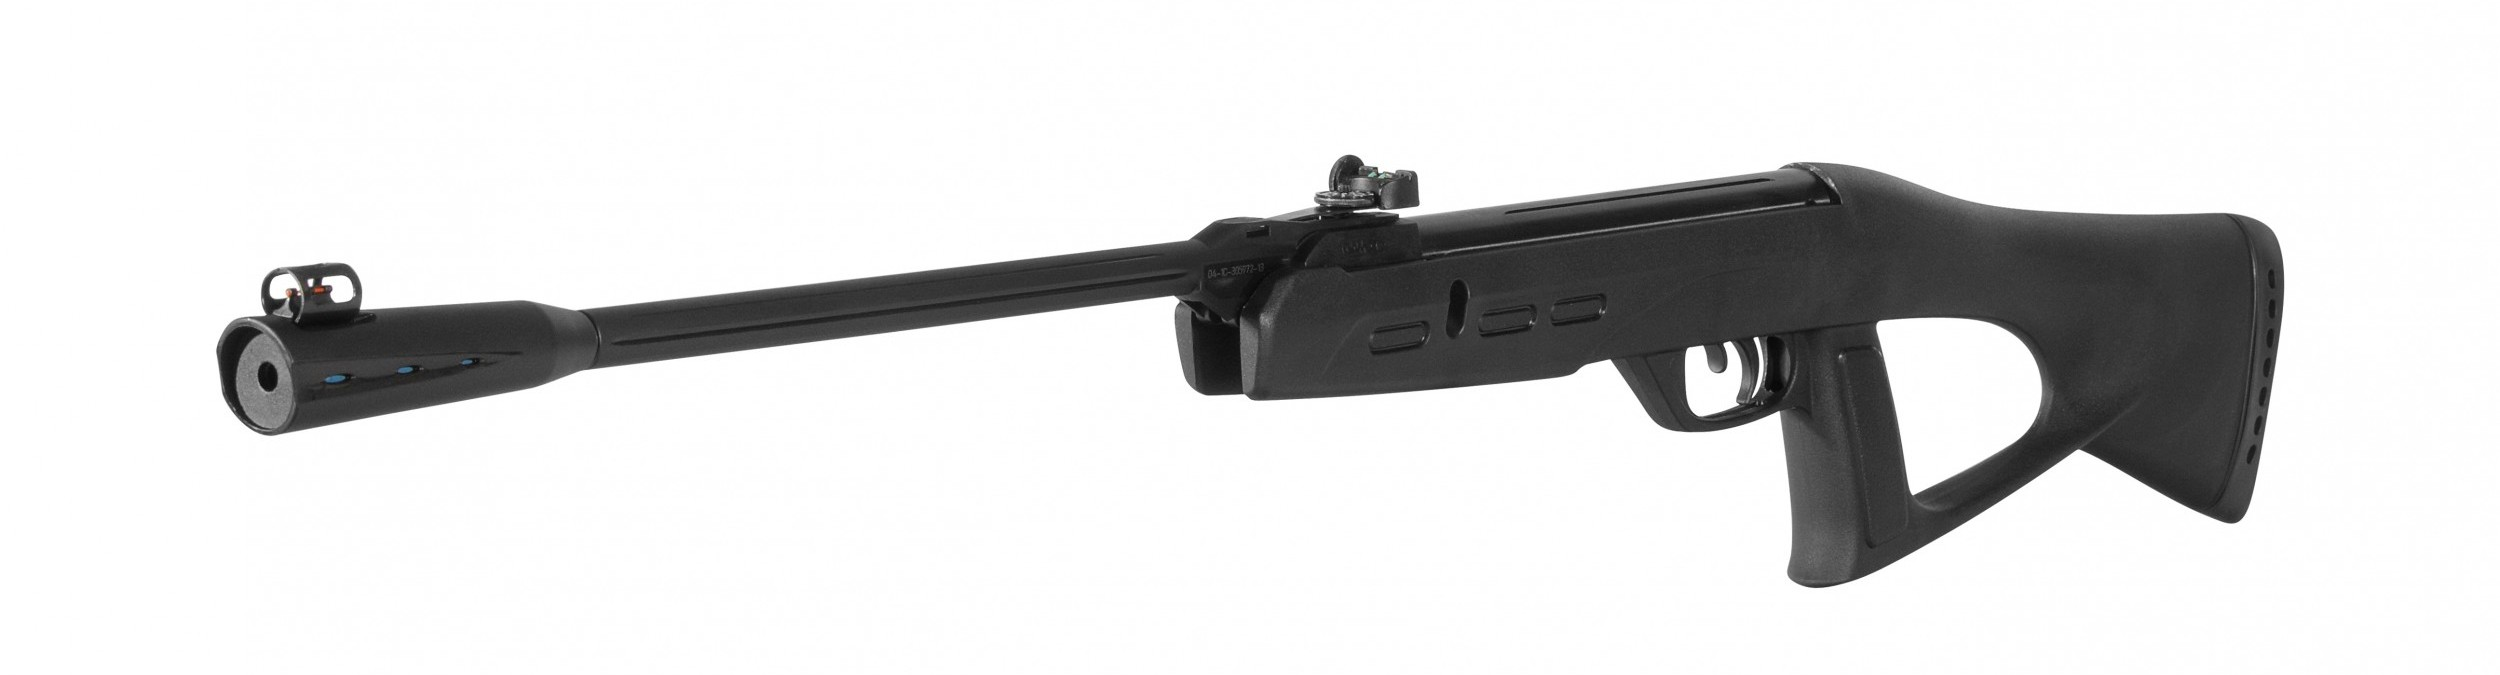 GAMO DELTA FOX GT WHISPER AIRGUN